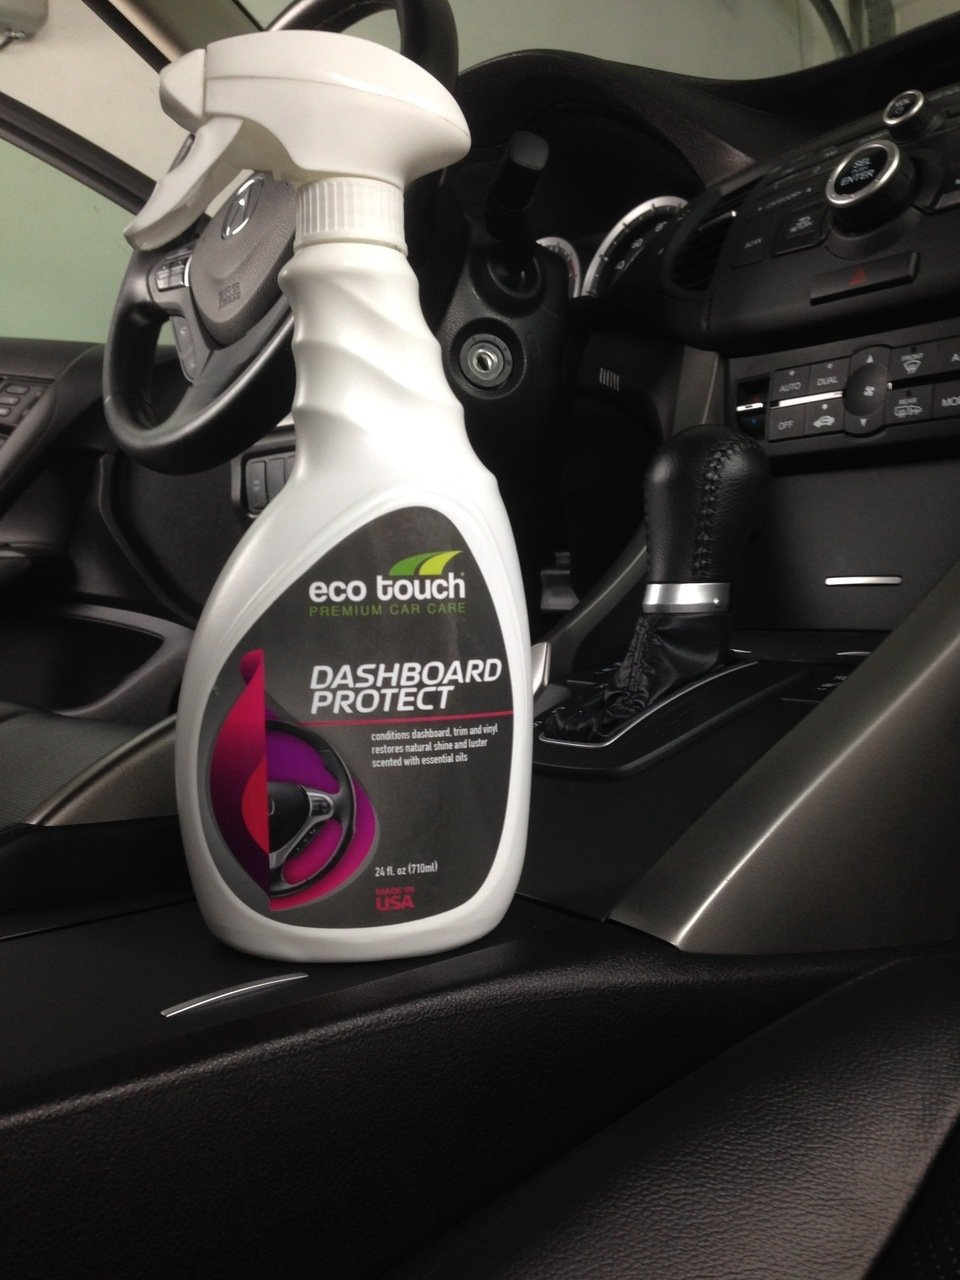 Amazoncom Eco Touch Car Interior Cleaner And Protectant For - Car signs on dashboardlets be honest you have no idea what your car dashboard signs